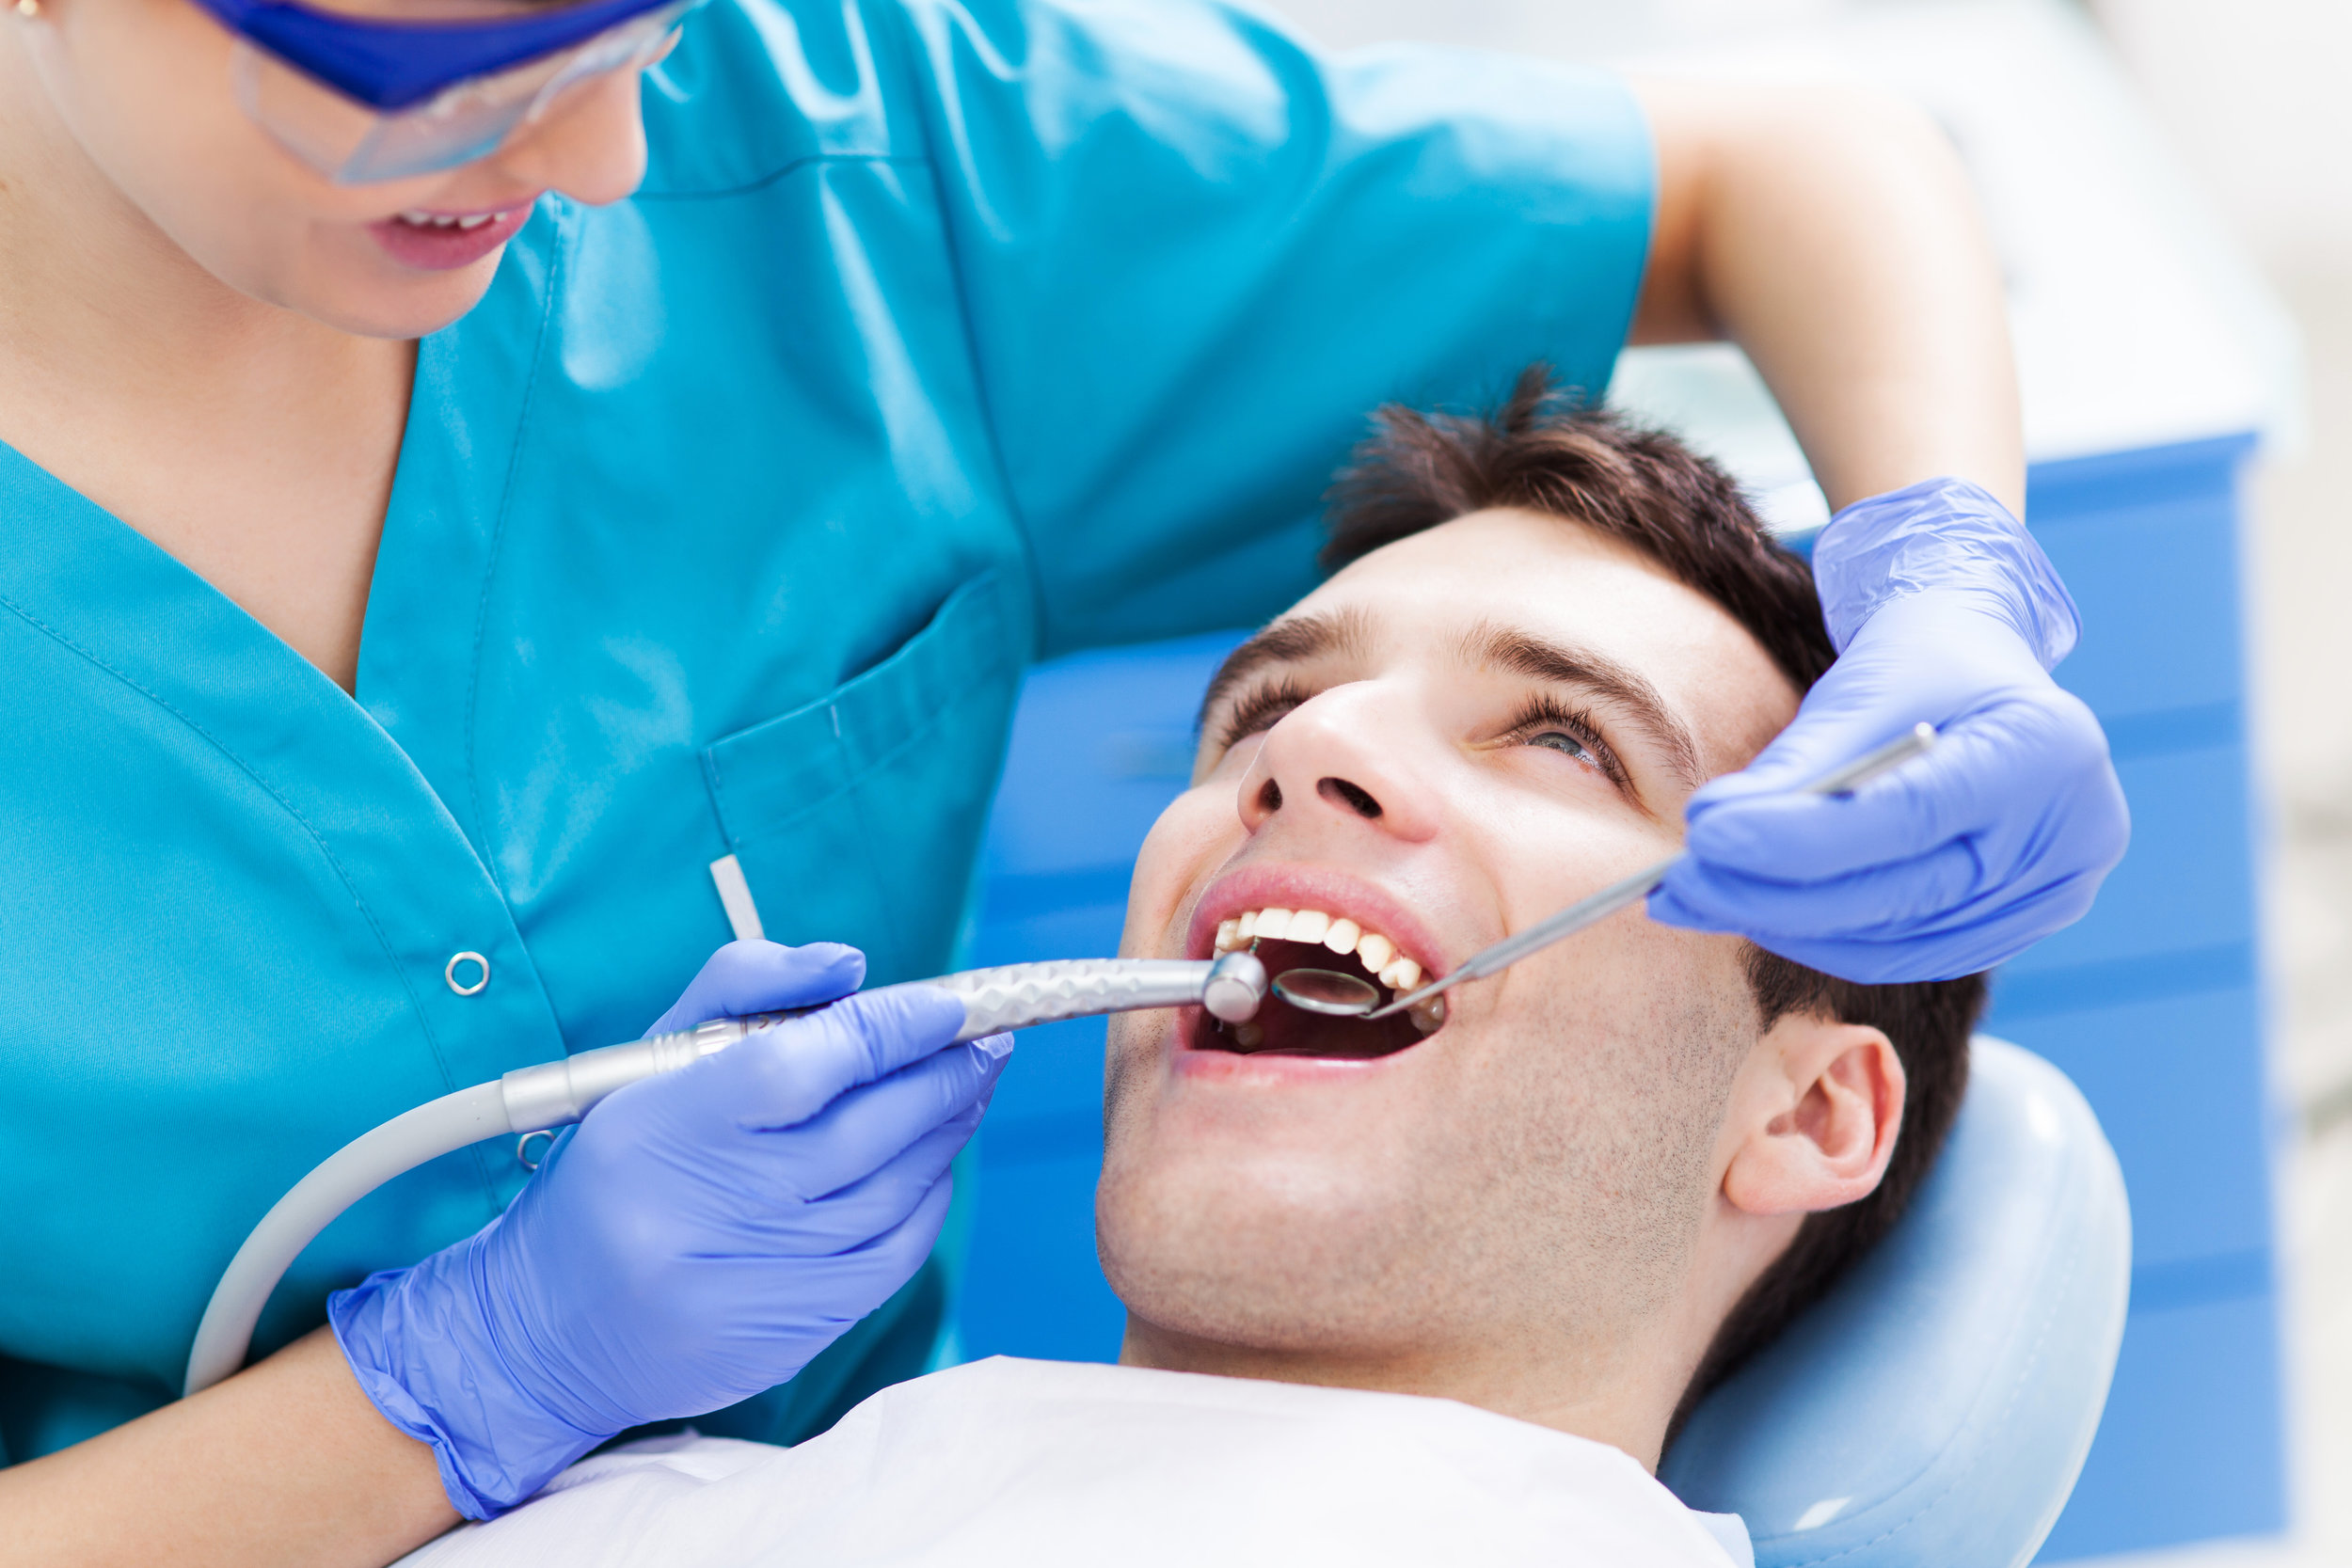 Teeth Cleaning at Eastlake Center for Implants and Restorative Dentistry